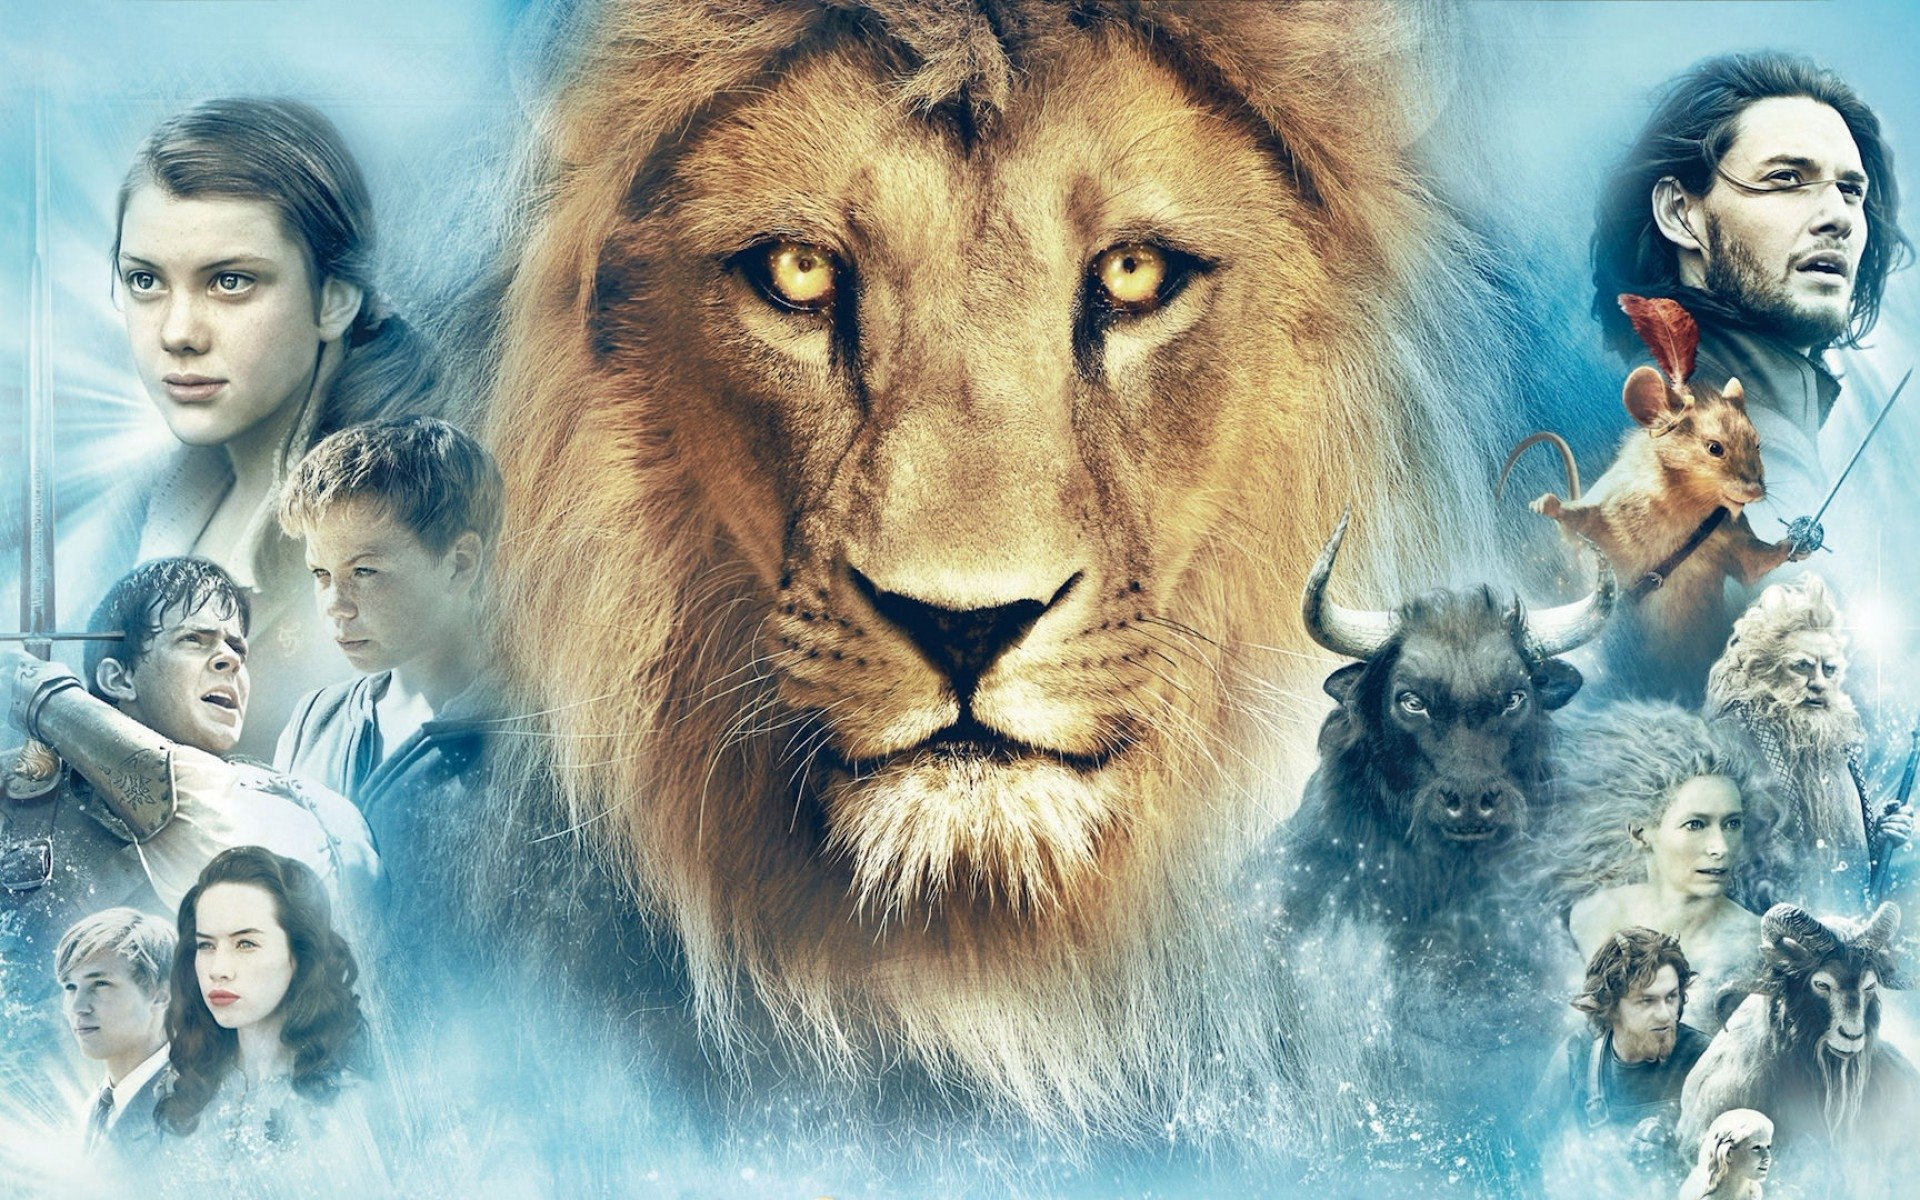 1920x1200 - The Chronicles of Narnia: The Voyage of the Dawn Treader Wallpapers 2